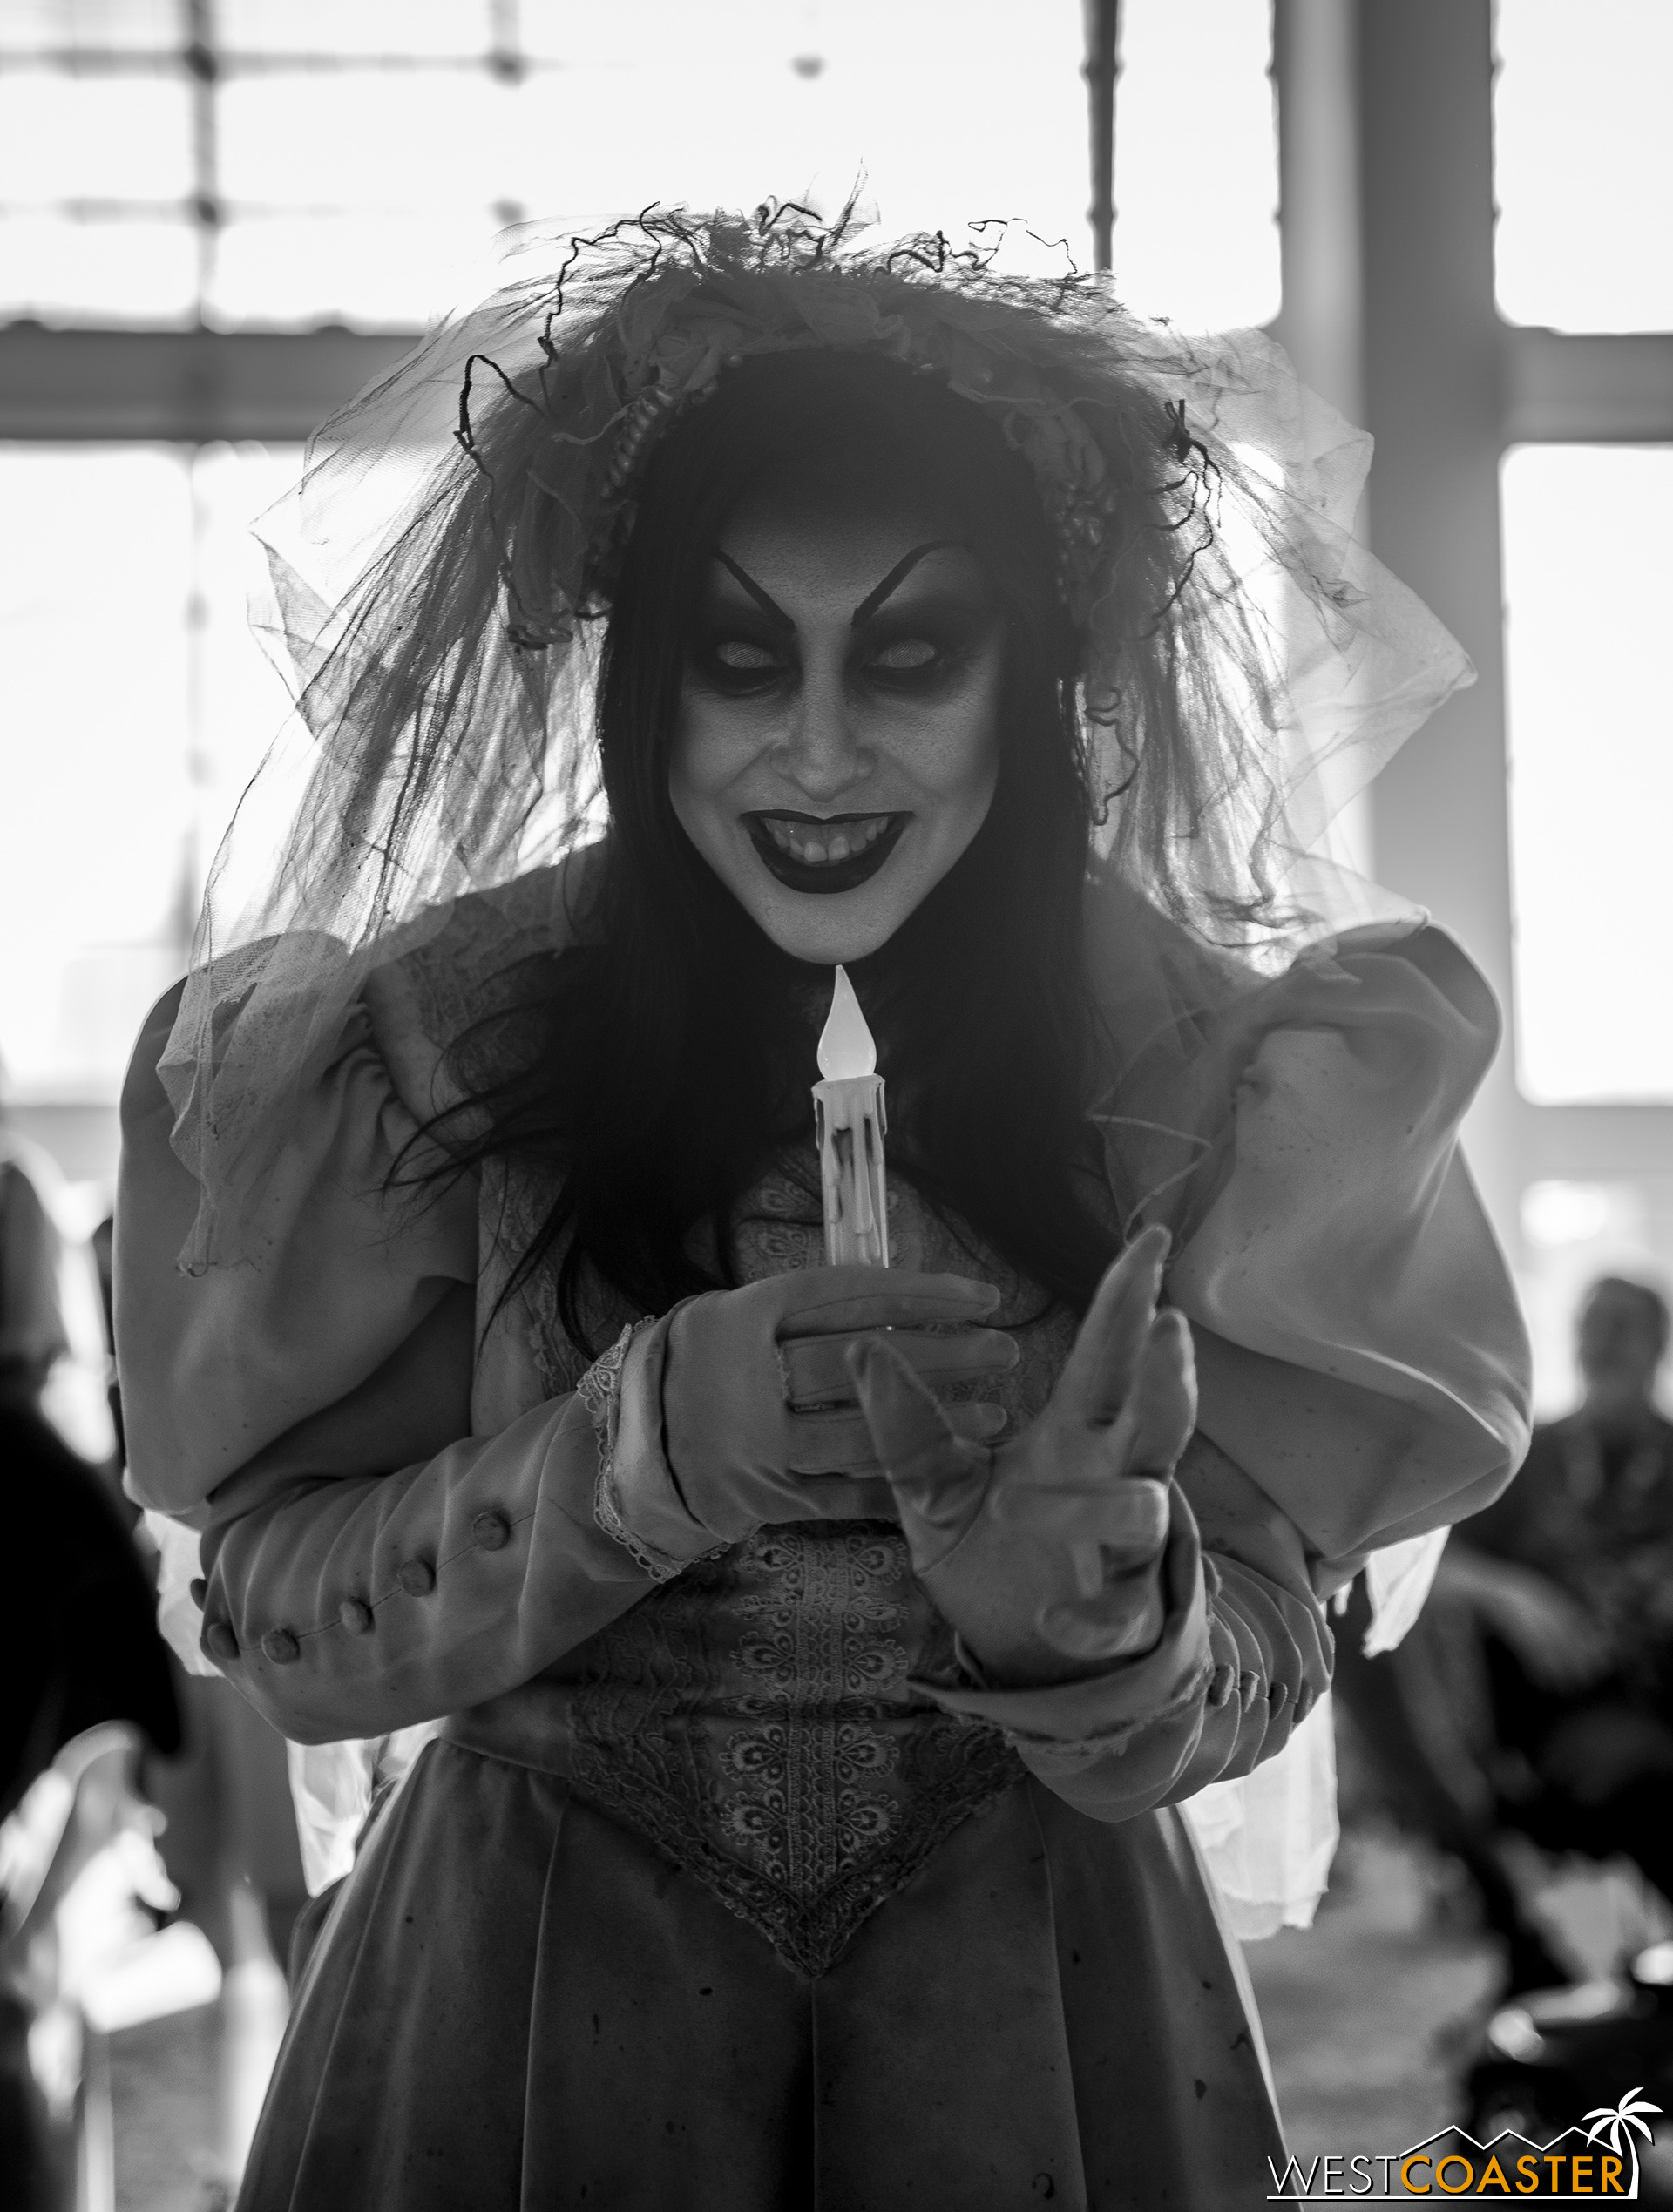 The Bride demands your silence as she seizes your soul…